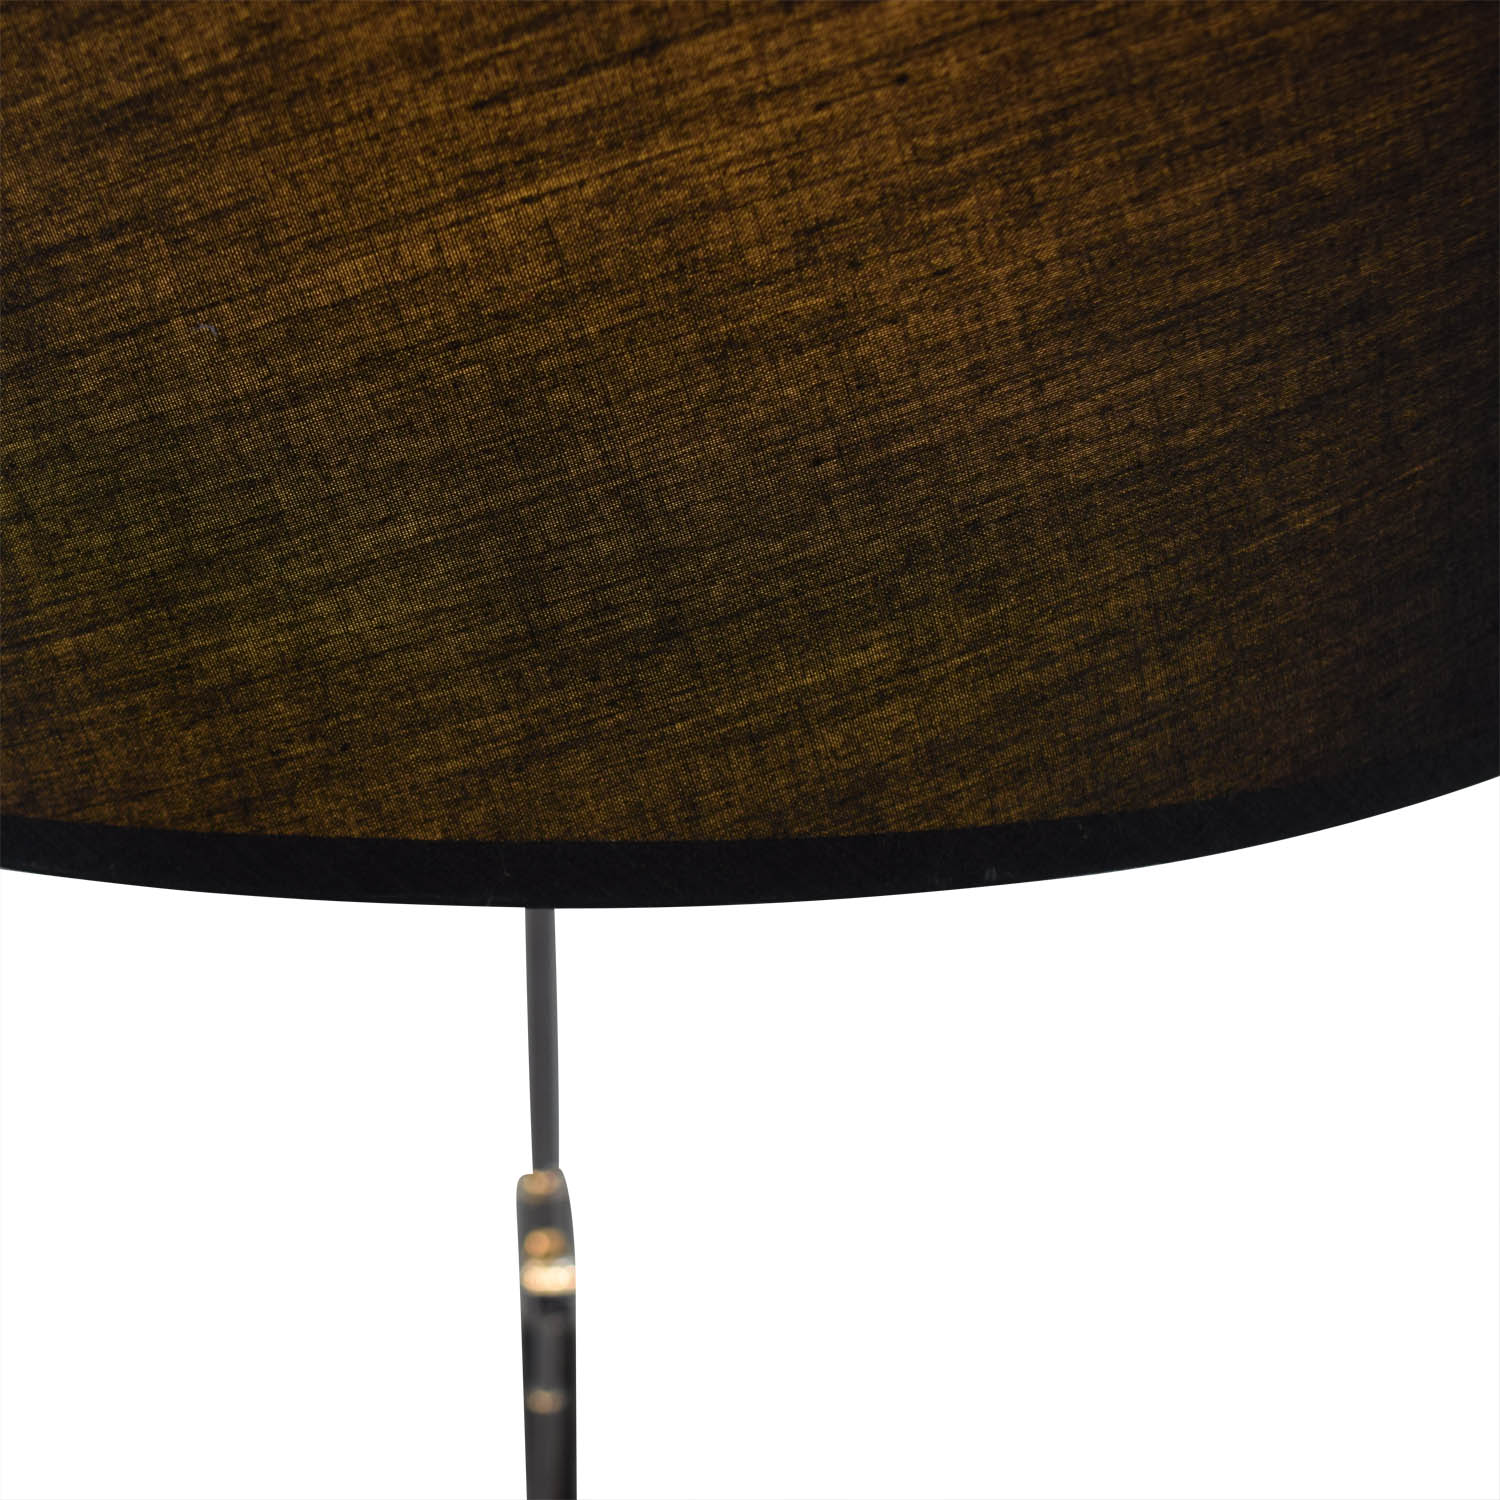 Floor Lamp used